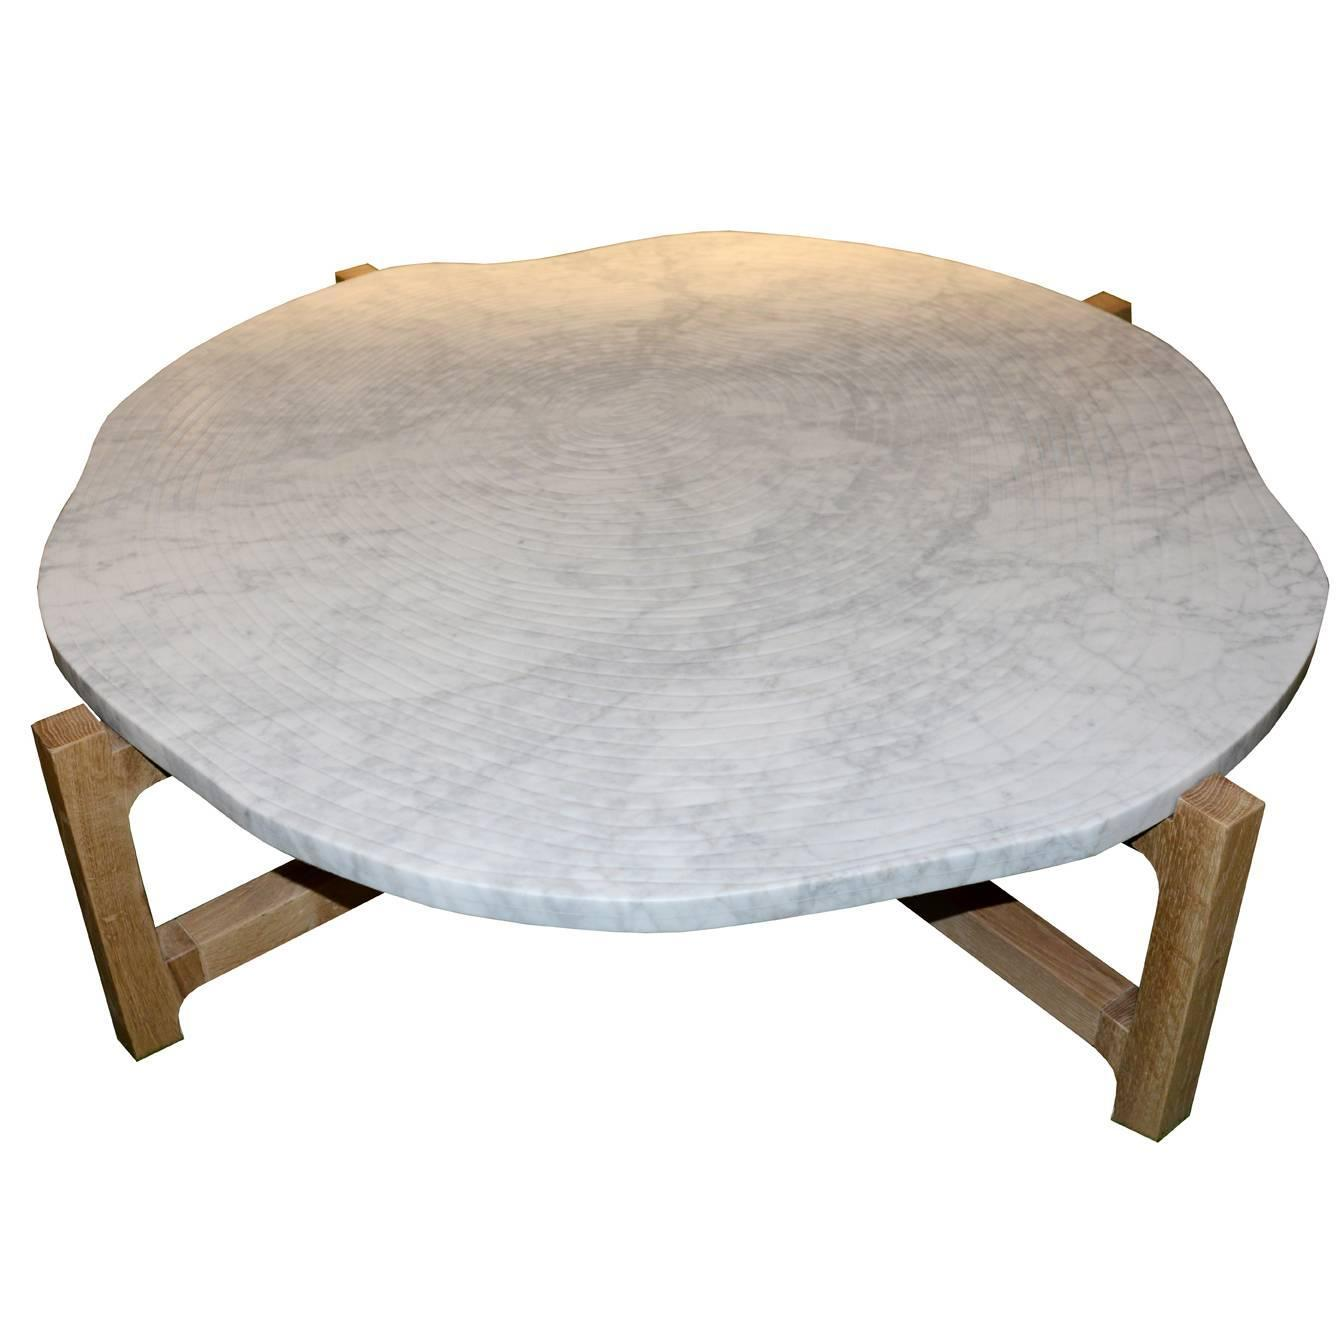 White Tree Stump Coffee Table: Coffee Table With White Marble Top As The Inside Of A Tree